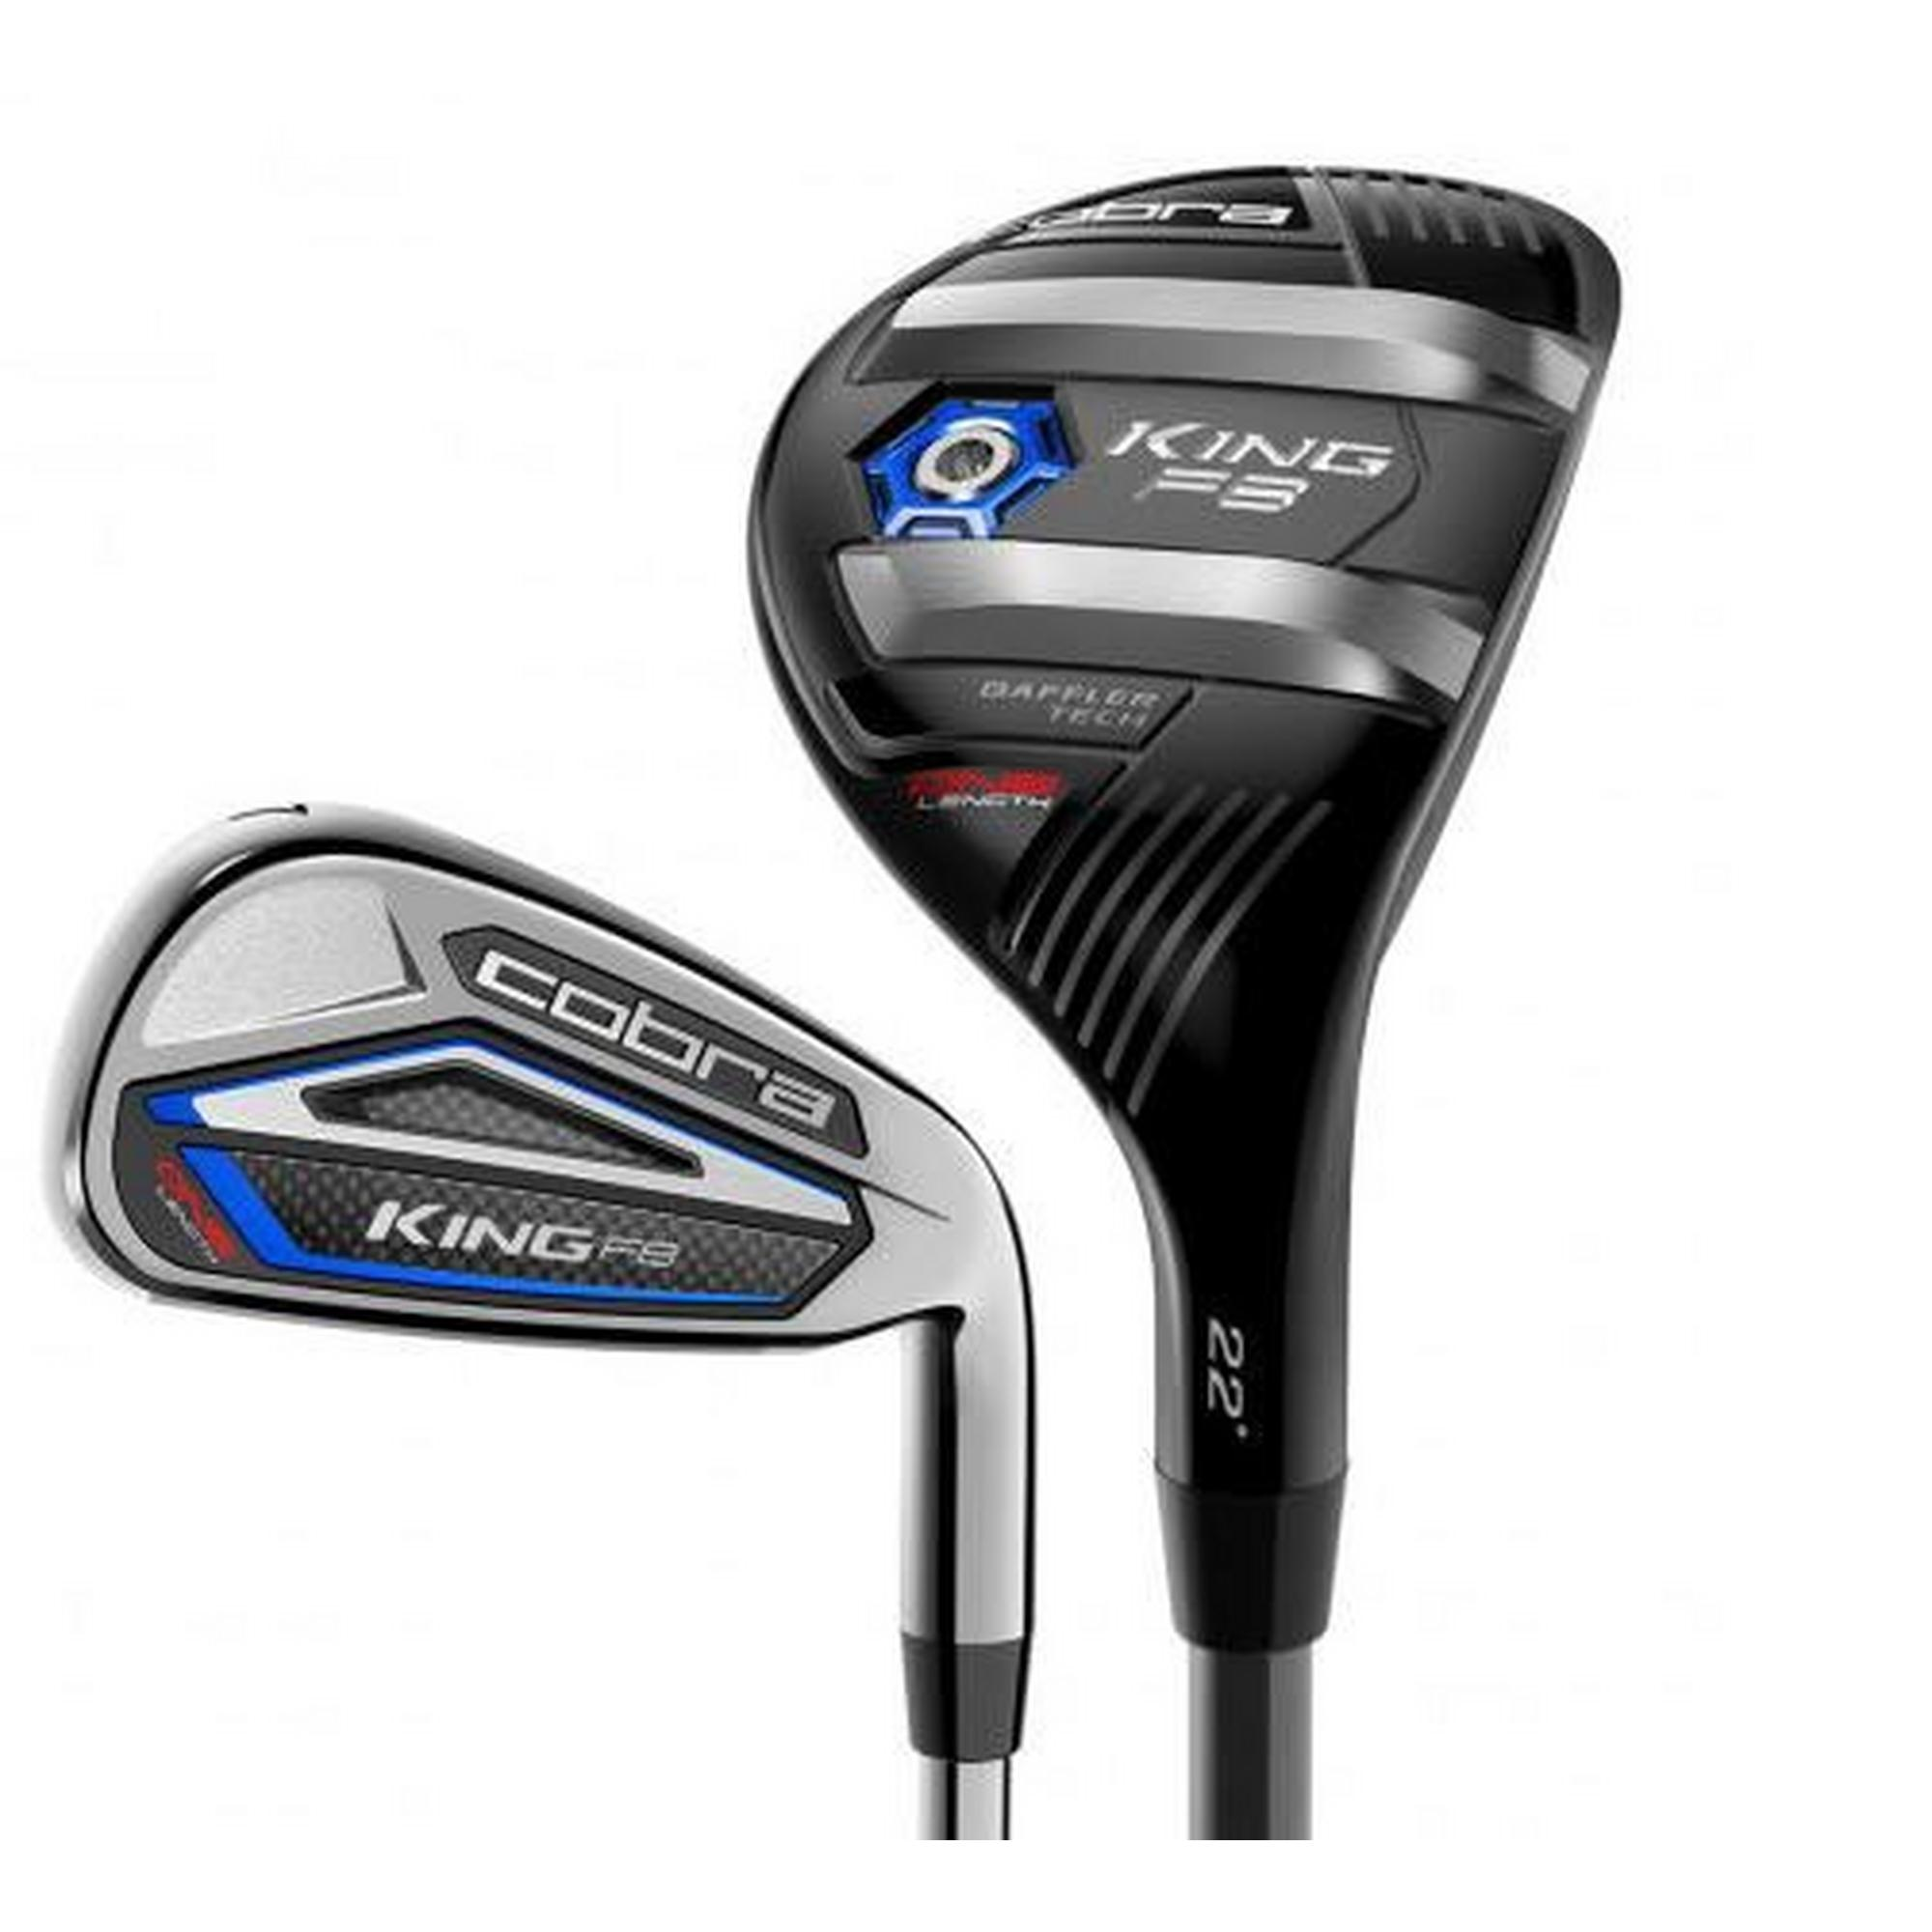 King F8 One Length 5H, 6-PW, GW Combo Iron Set with Graphite Shafts